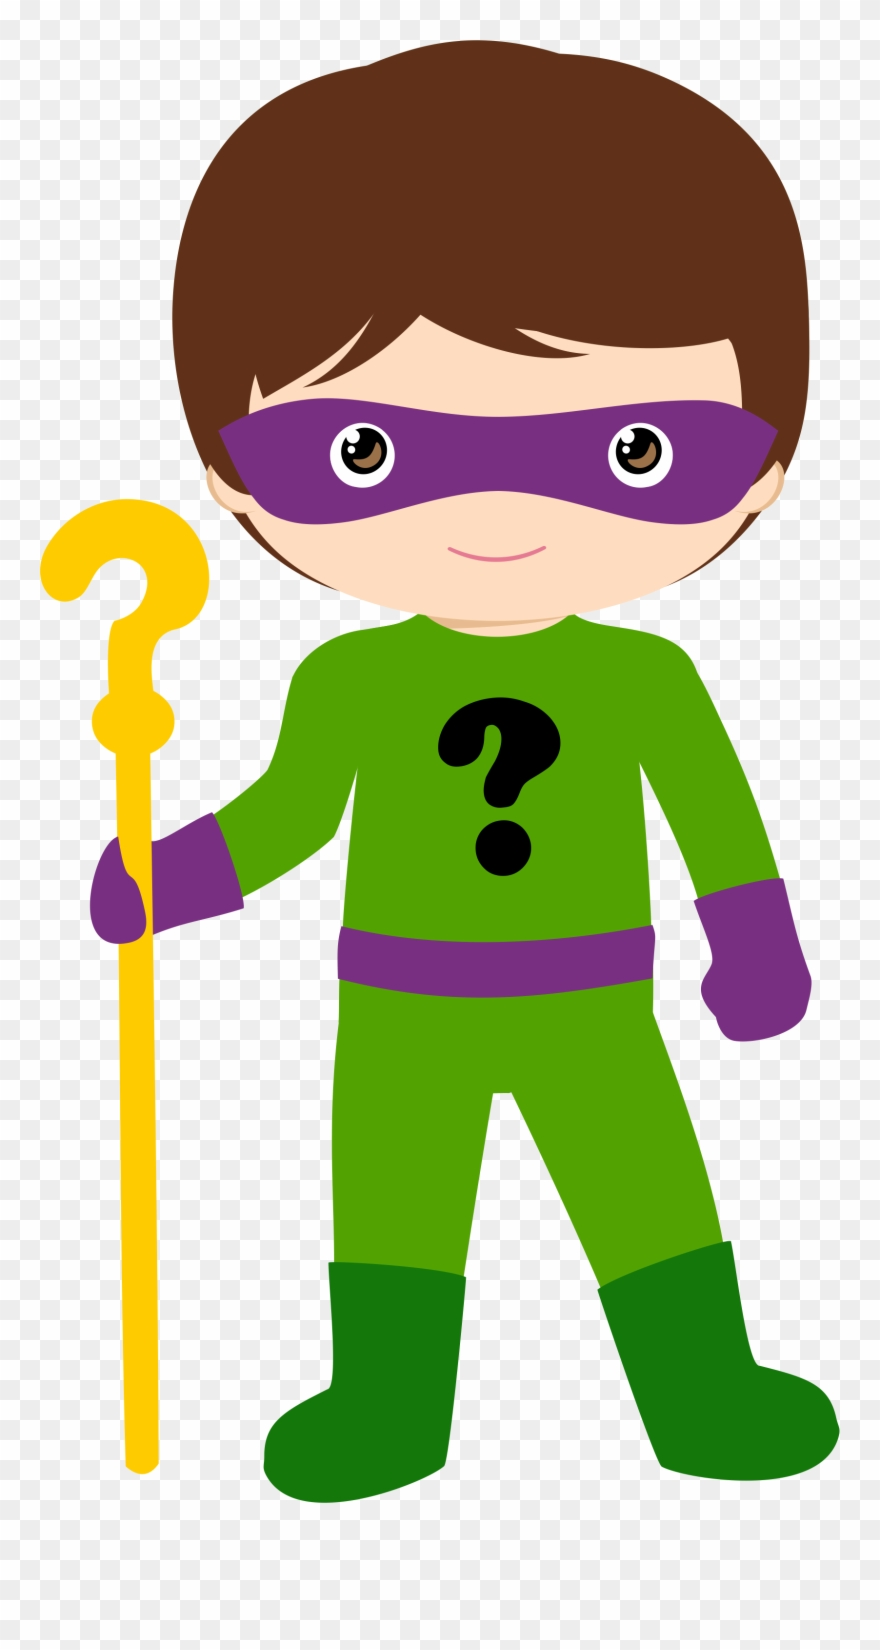 Superhero costume clipart banner download Costume Clipart Superhero Dad - Riddler Clipart - Png ... banner download